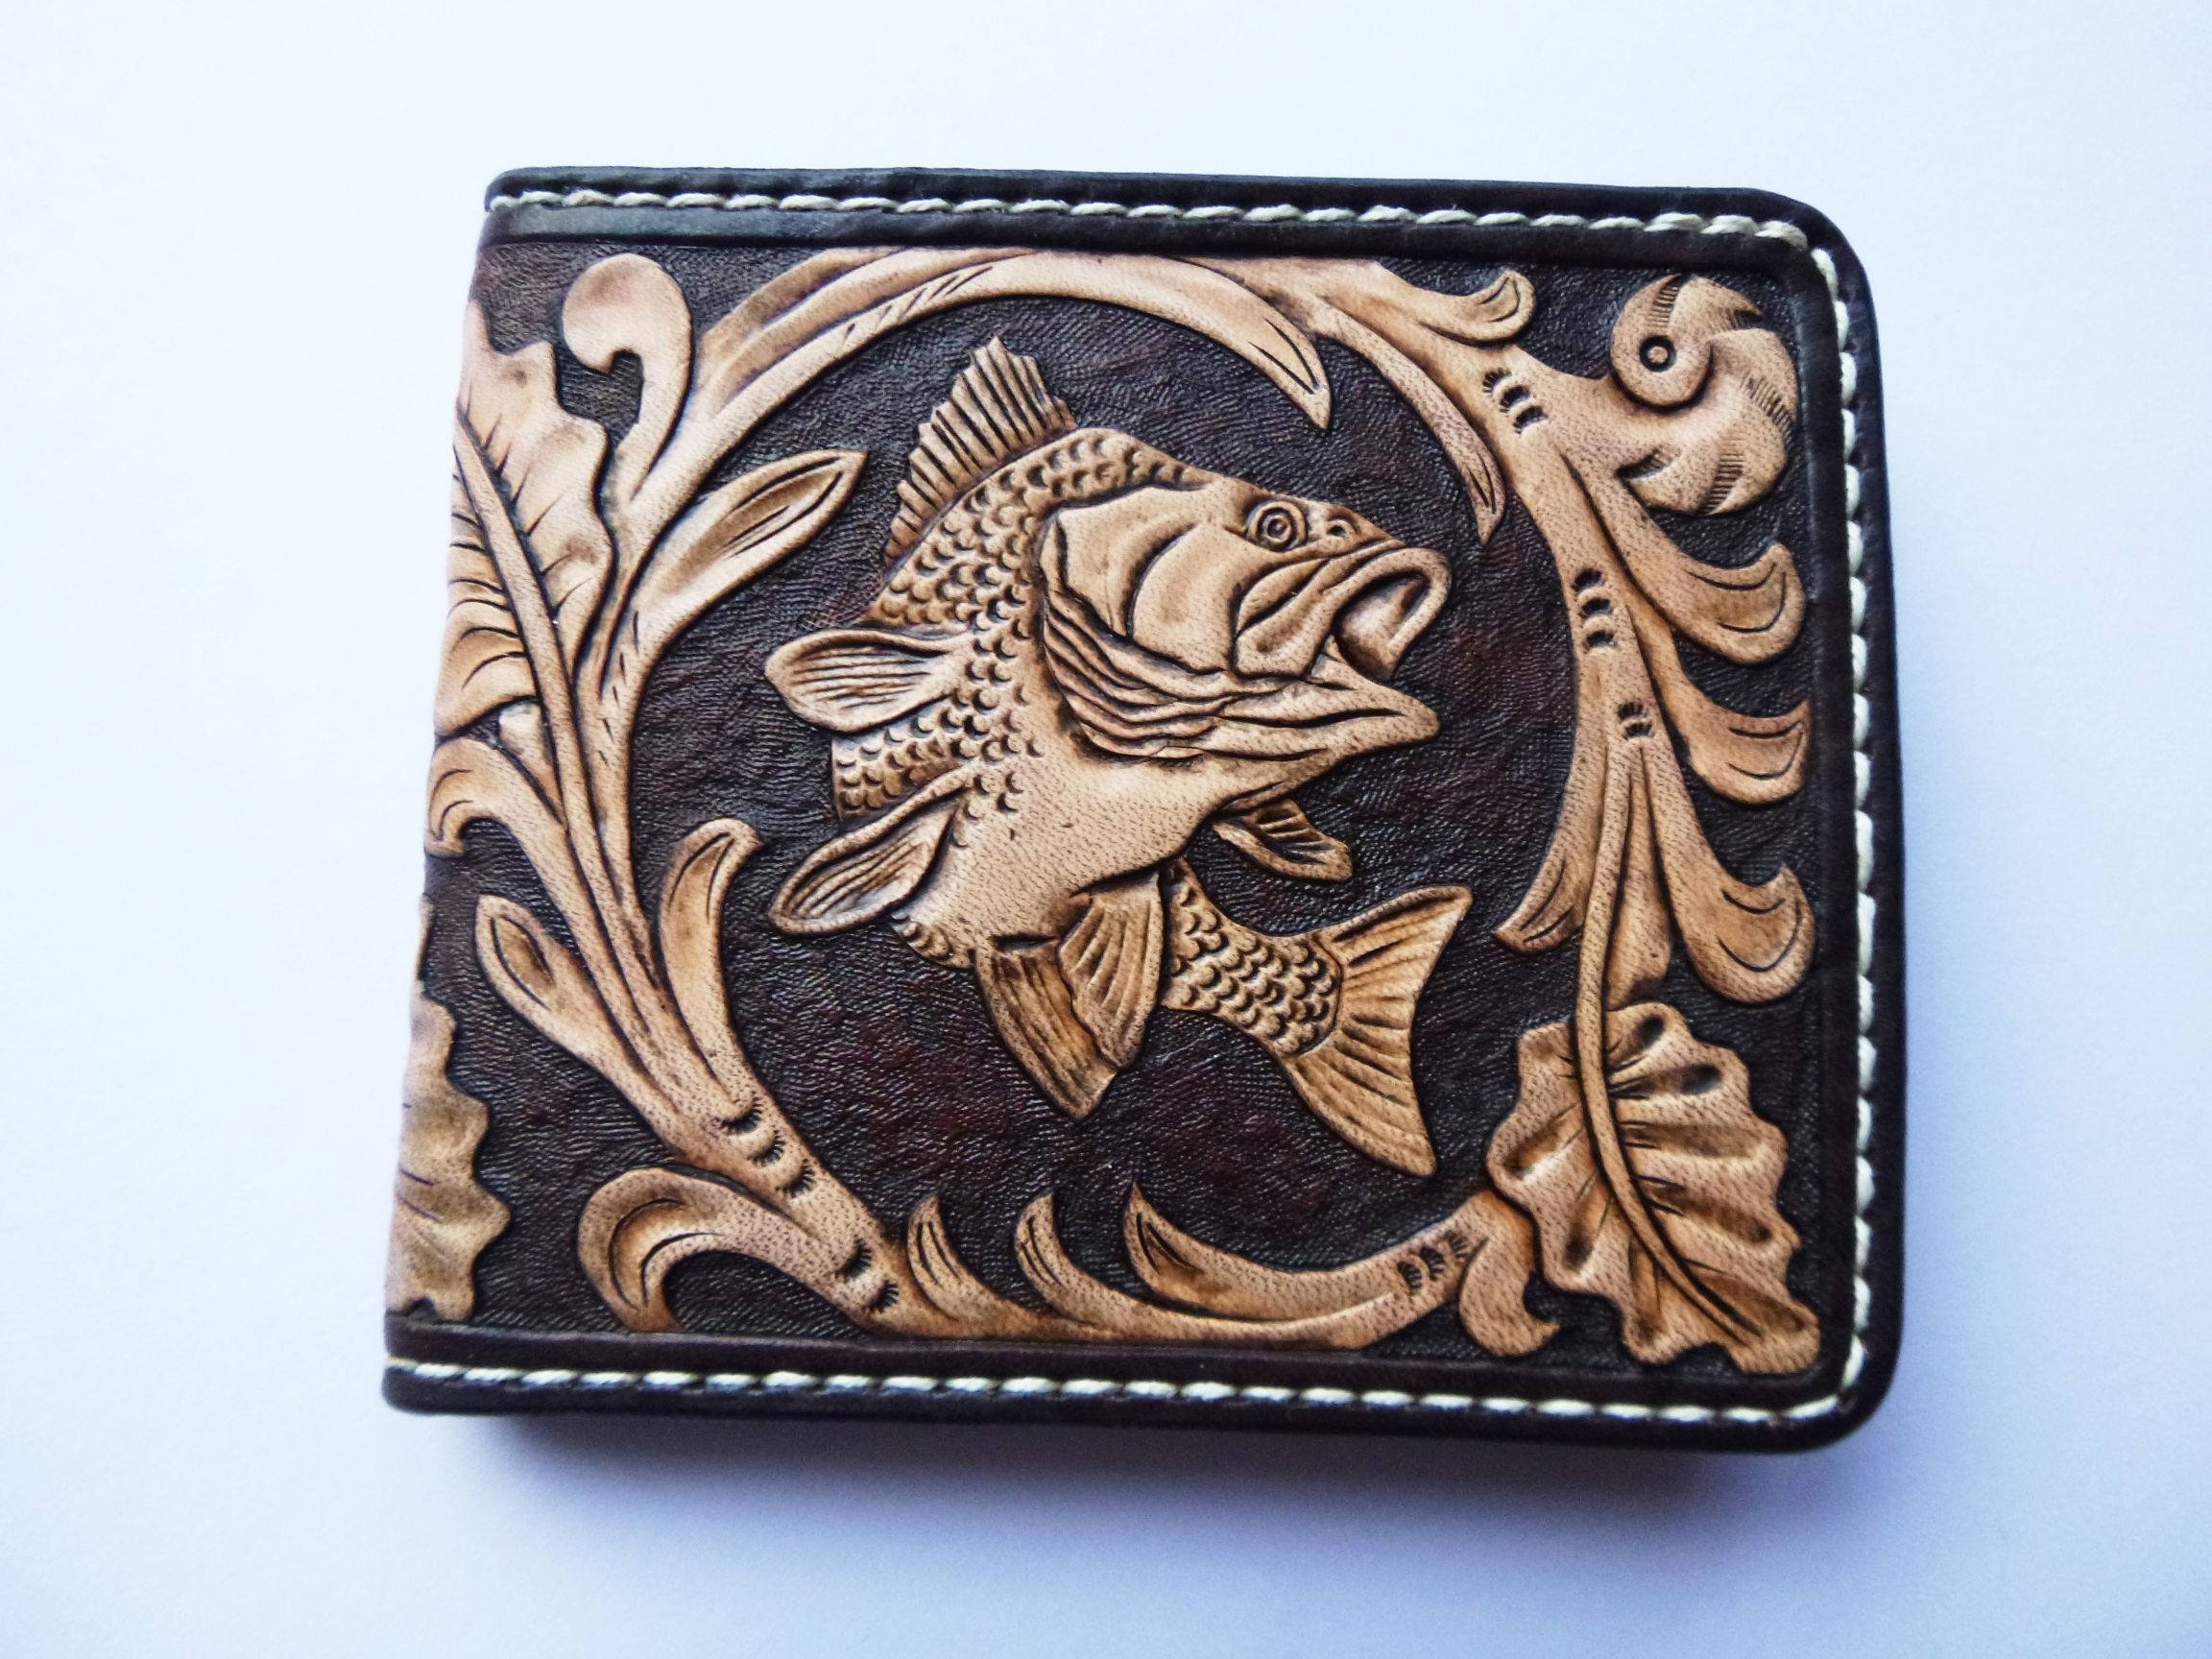 Men's 3D Genuine Leather Wallet, Hand-Carved, Hand-Painted, Leather Carving, Custom wallet, Personalized wallet, Fish, Your Initials